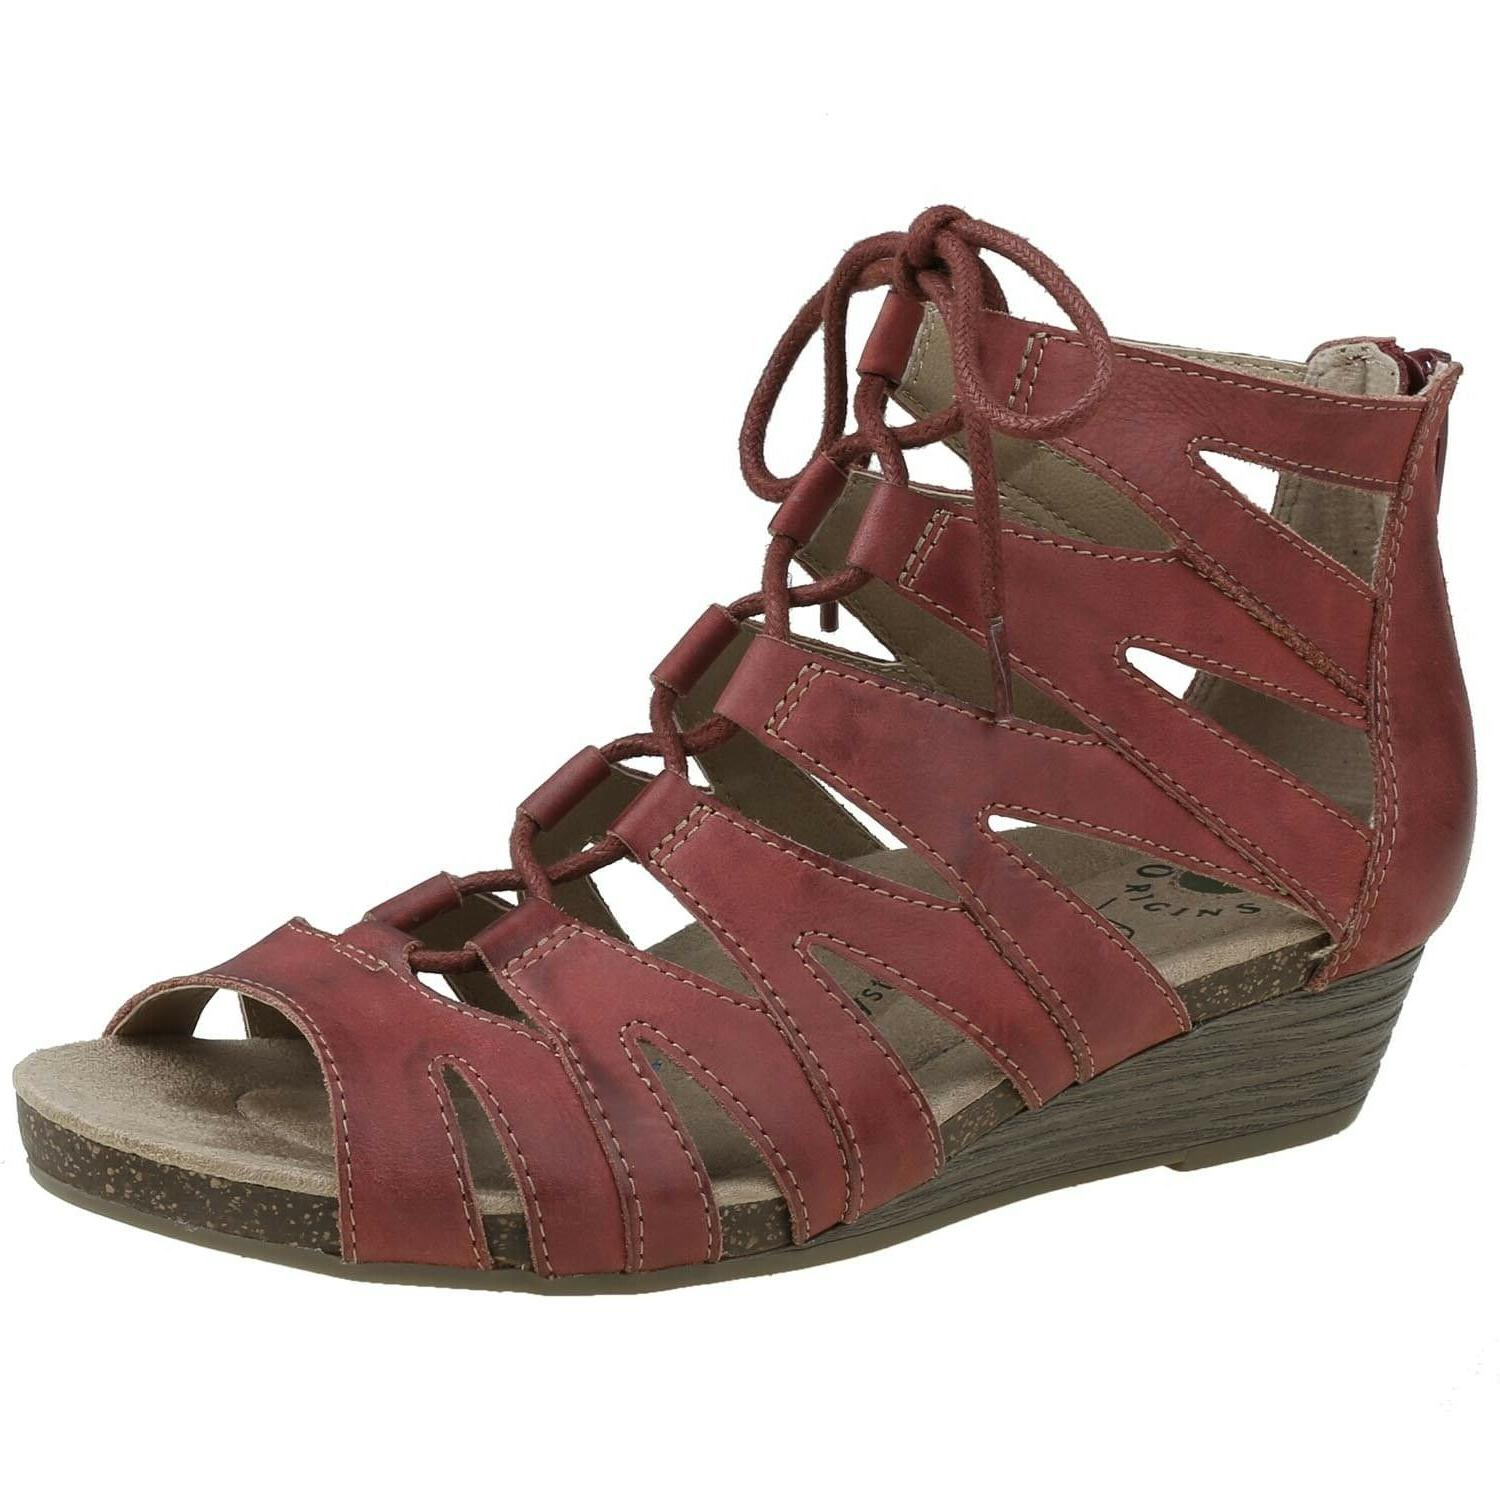 Earth W Sandals Gladiator Leather Wedge Lace Up Women's